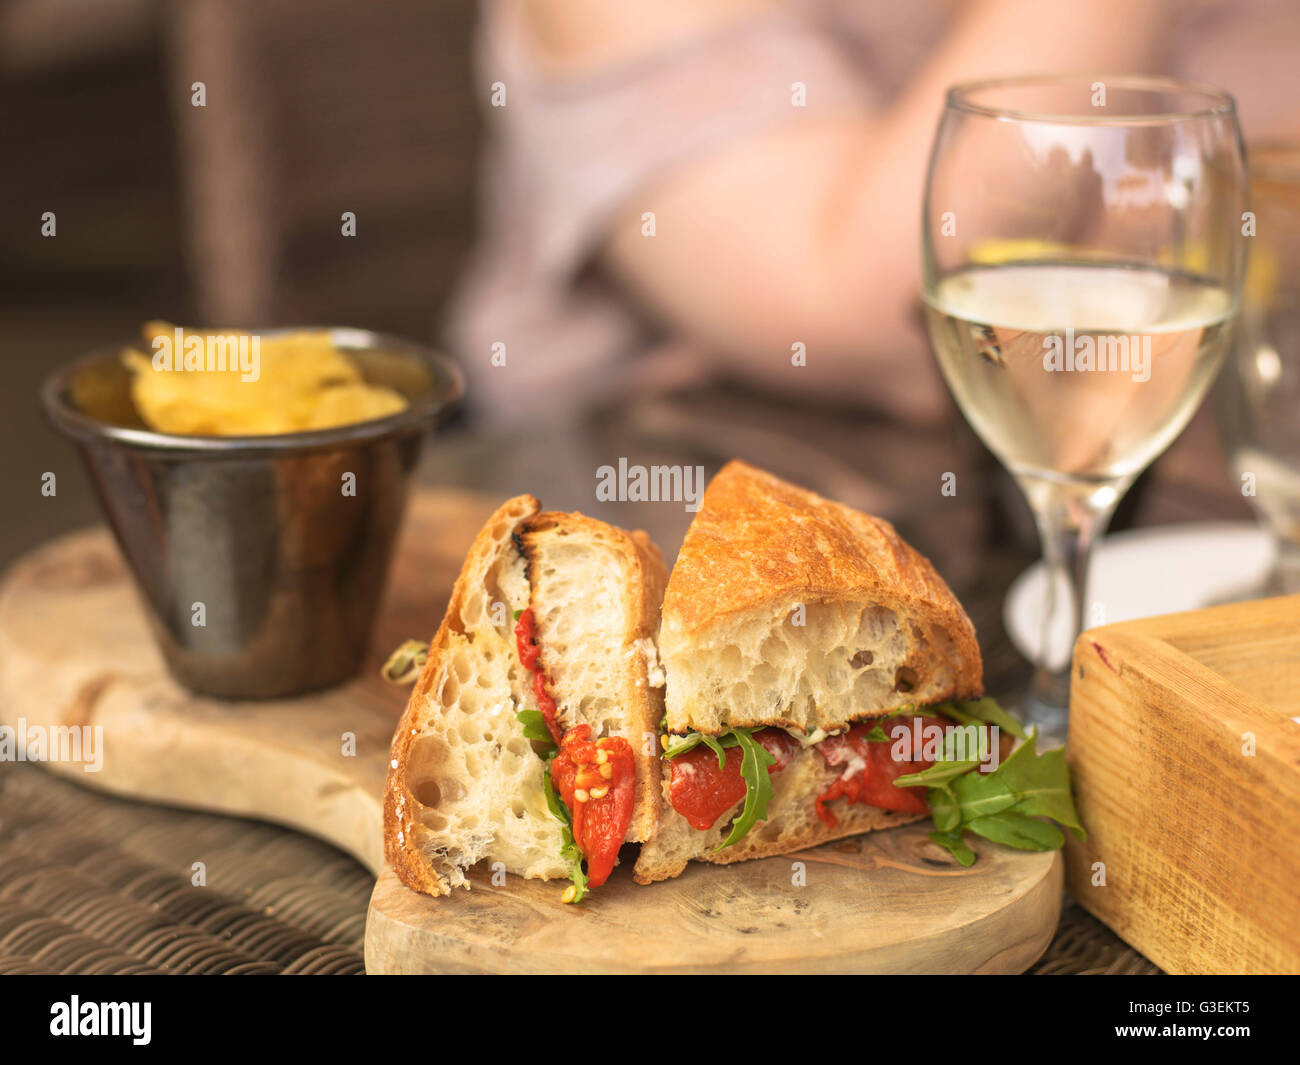 Vegetarian Italian Style Red Pepper Ciabatta Bread Sandwich with a Glass of White Wine On a Wooden Serving Board Stock Photo